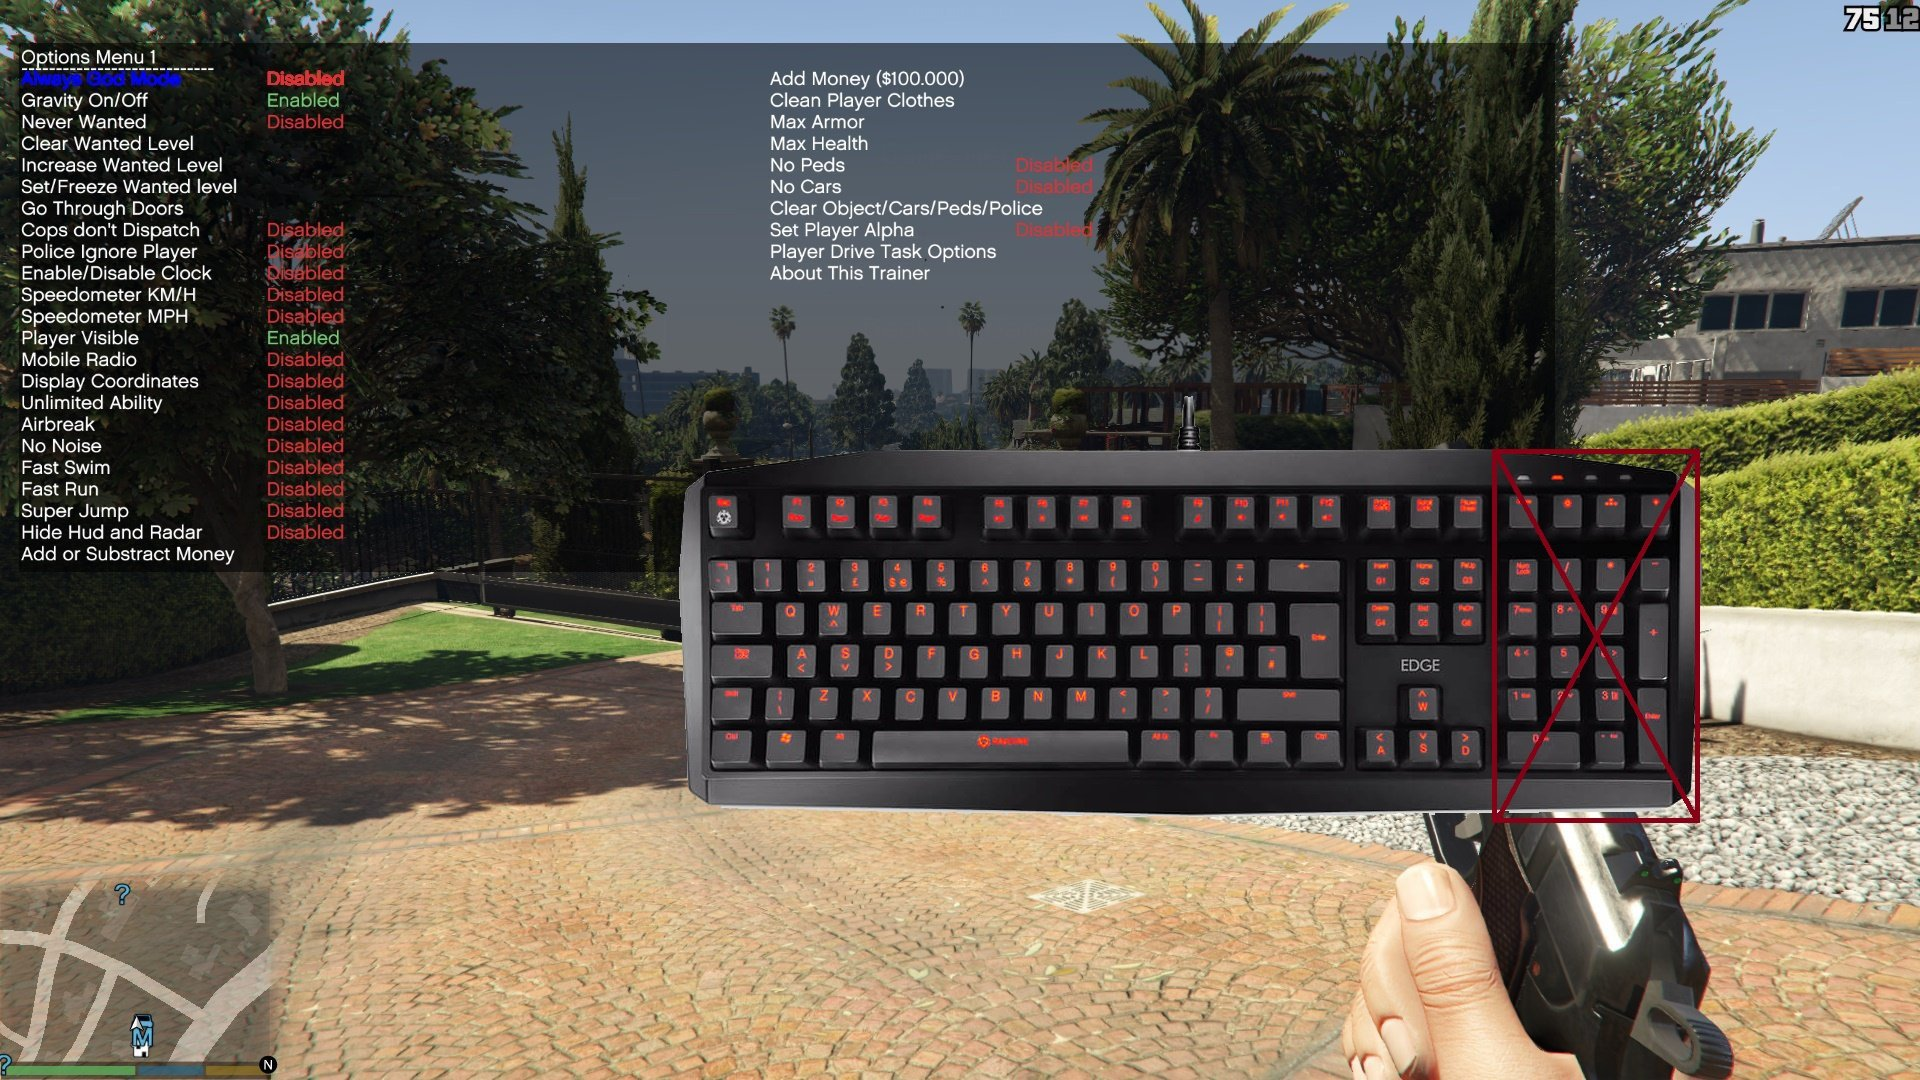 Simple Trainer for GTA V (For users who don't have number